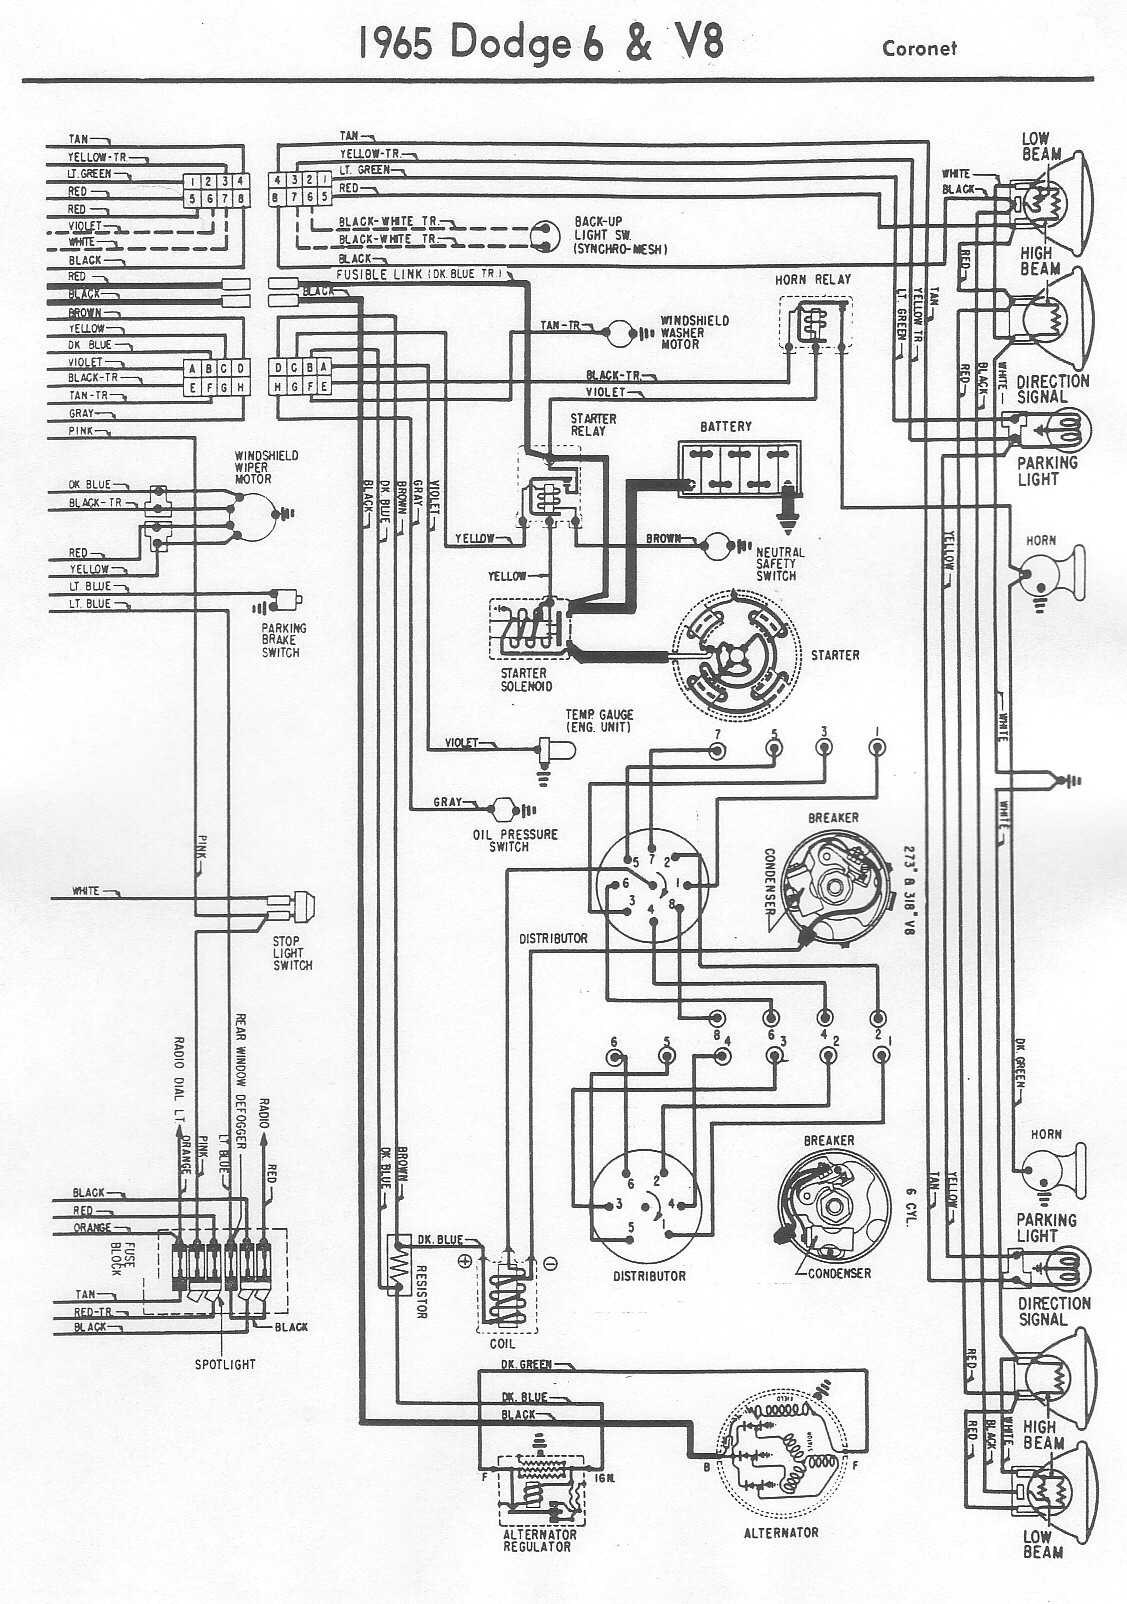 small resolution of 1964 dodge dart wiring diagram wiring diagrams transfer1965 dodge wiring diagram wiring diagram name 1964 dodge